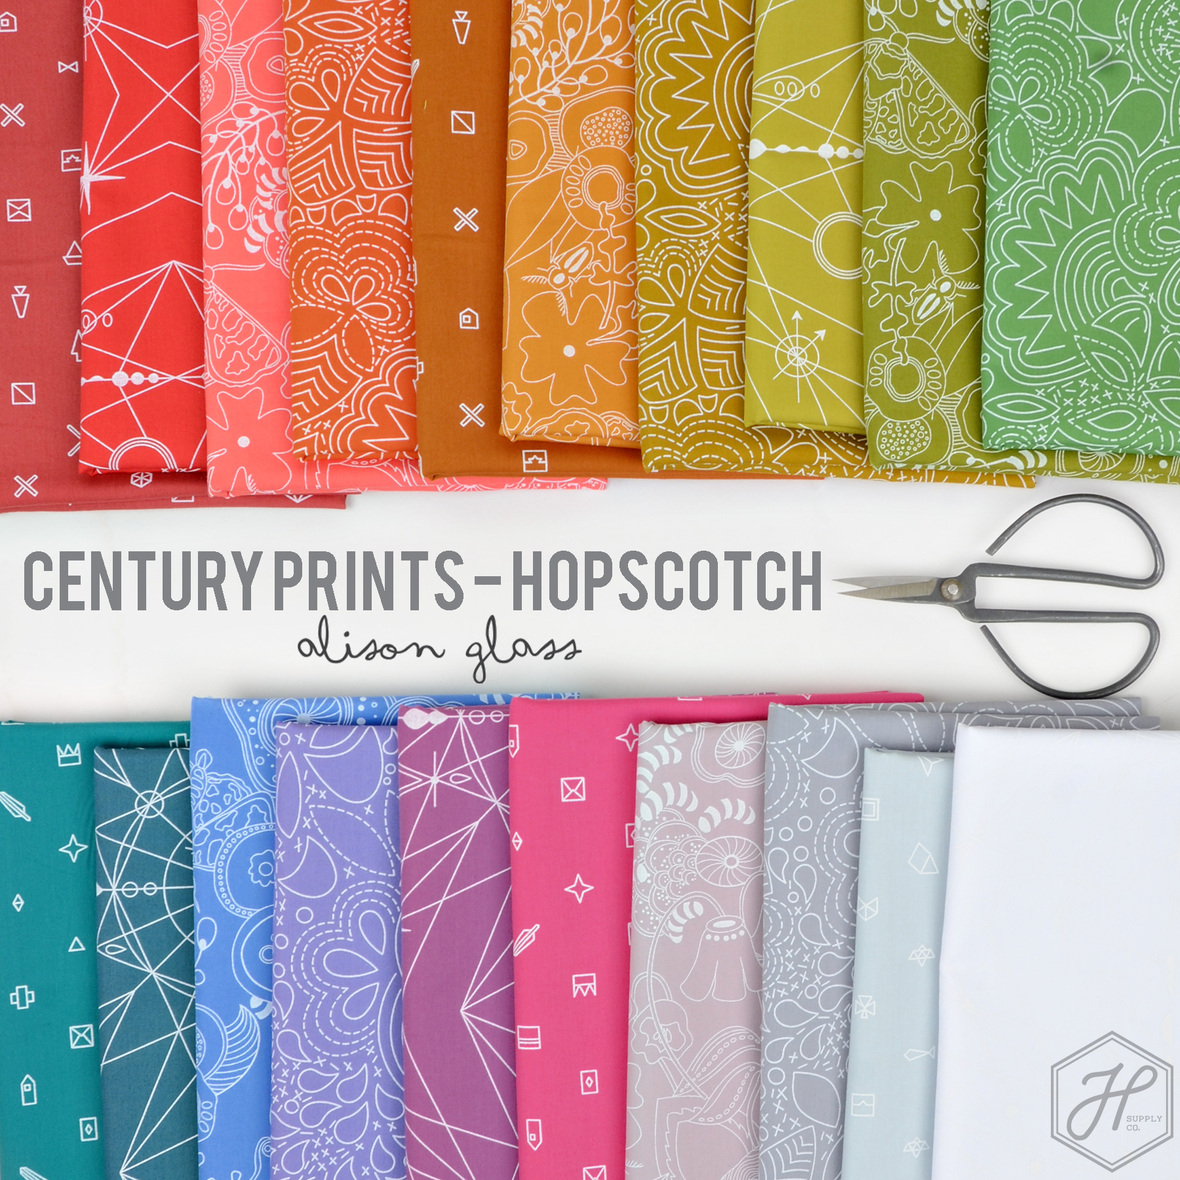 Alison-Glass-Century-Prints-Hopscotch-for-Andover-Fabric-at-Hawthorne-Supply-Co